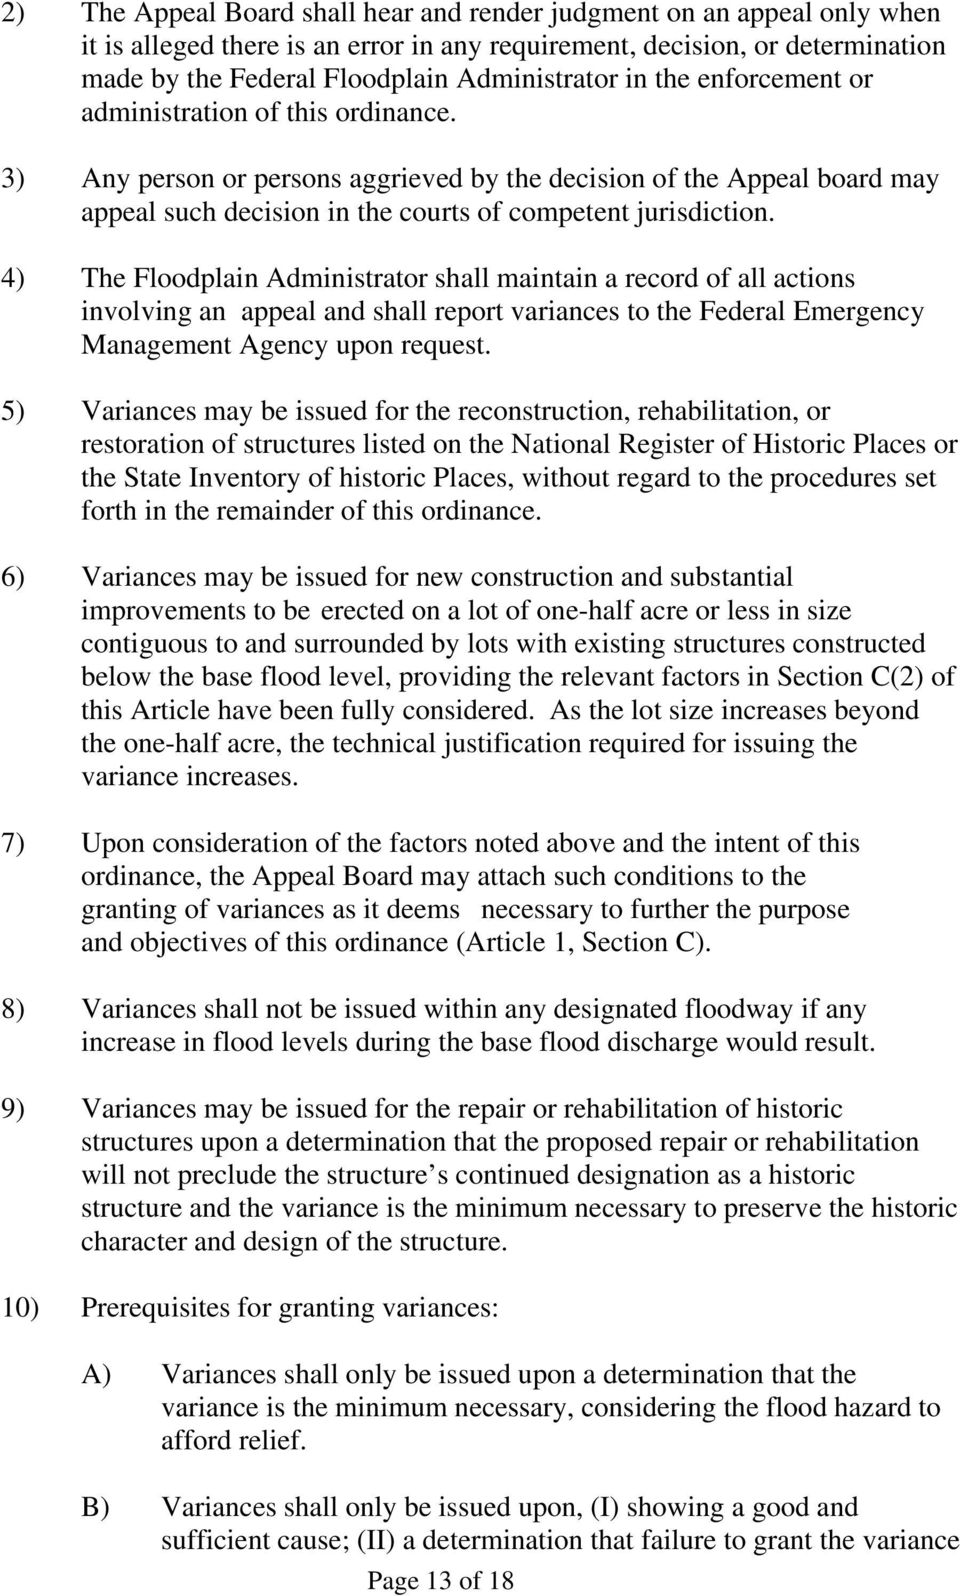 4) The Floodplain Administrator shall maintain a record of all actions involving an appeal and shall report variances to the Federal Emergency Management Agency upon request.